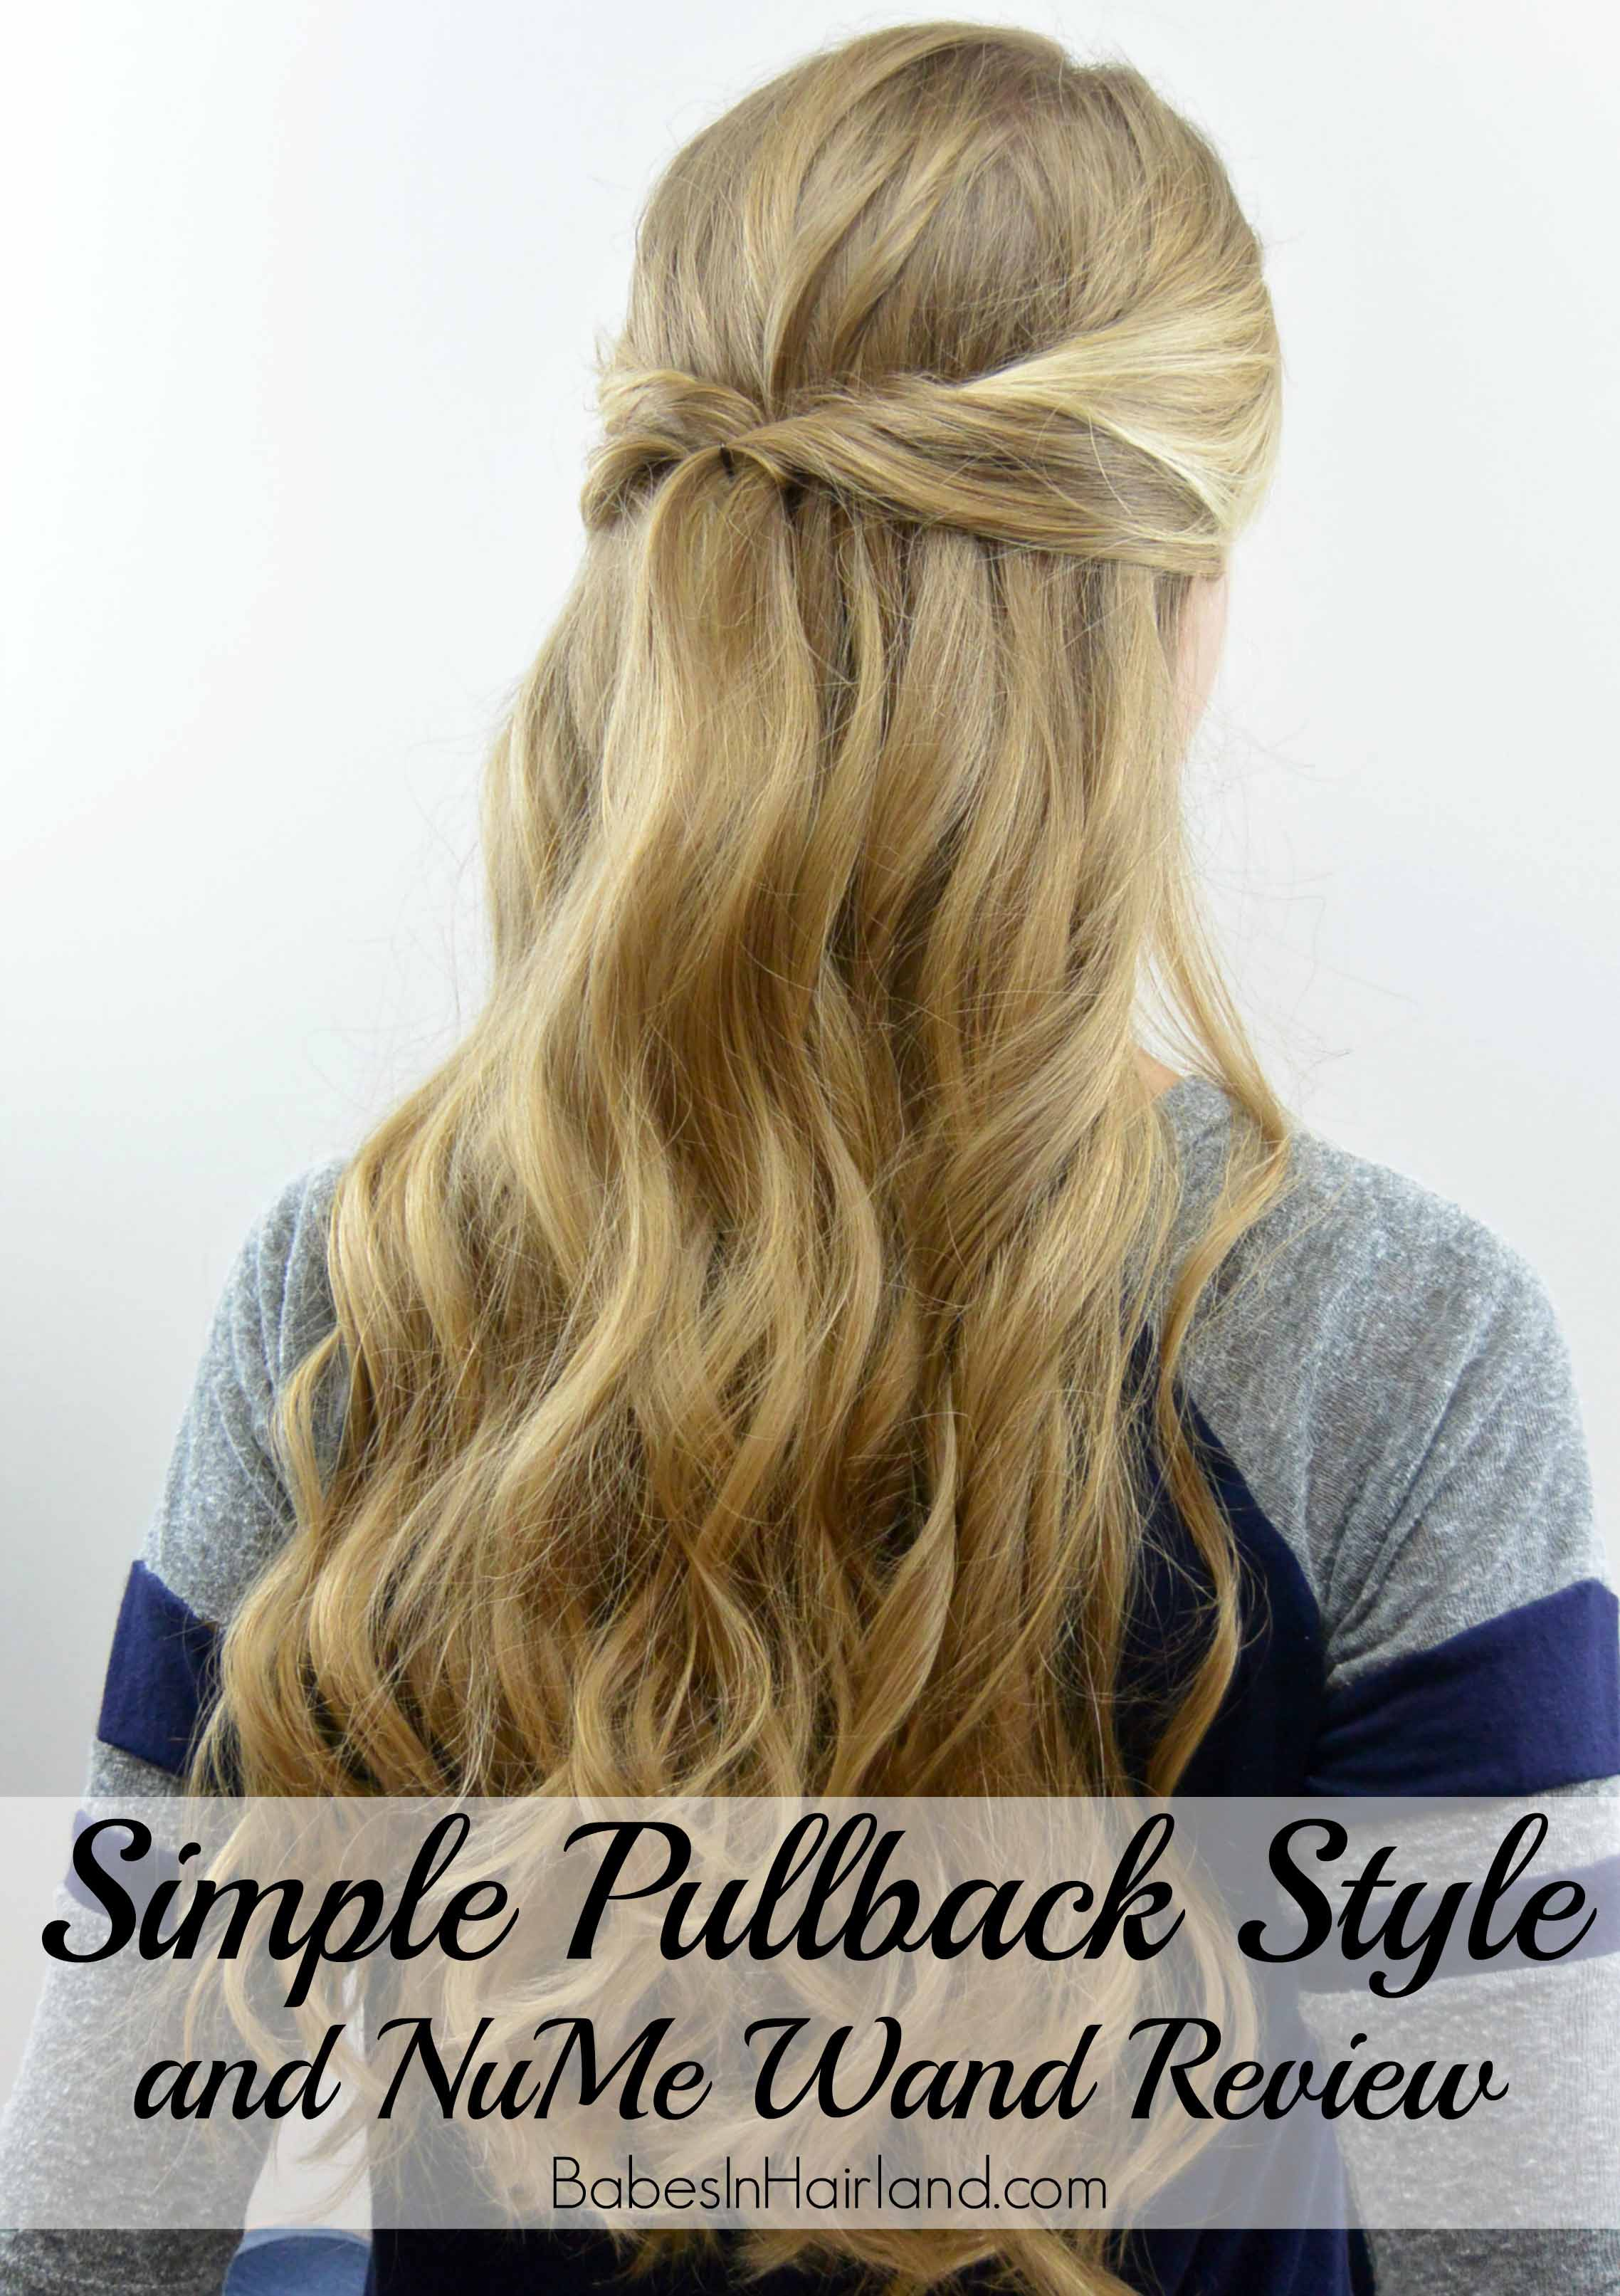 curling wand hair styles simple pullback amp curls nume wand review in hairland 1344